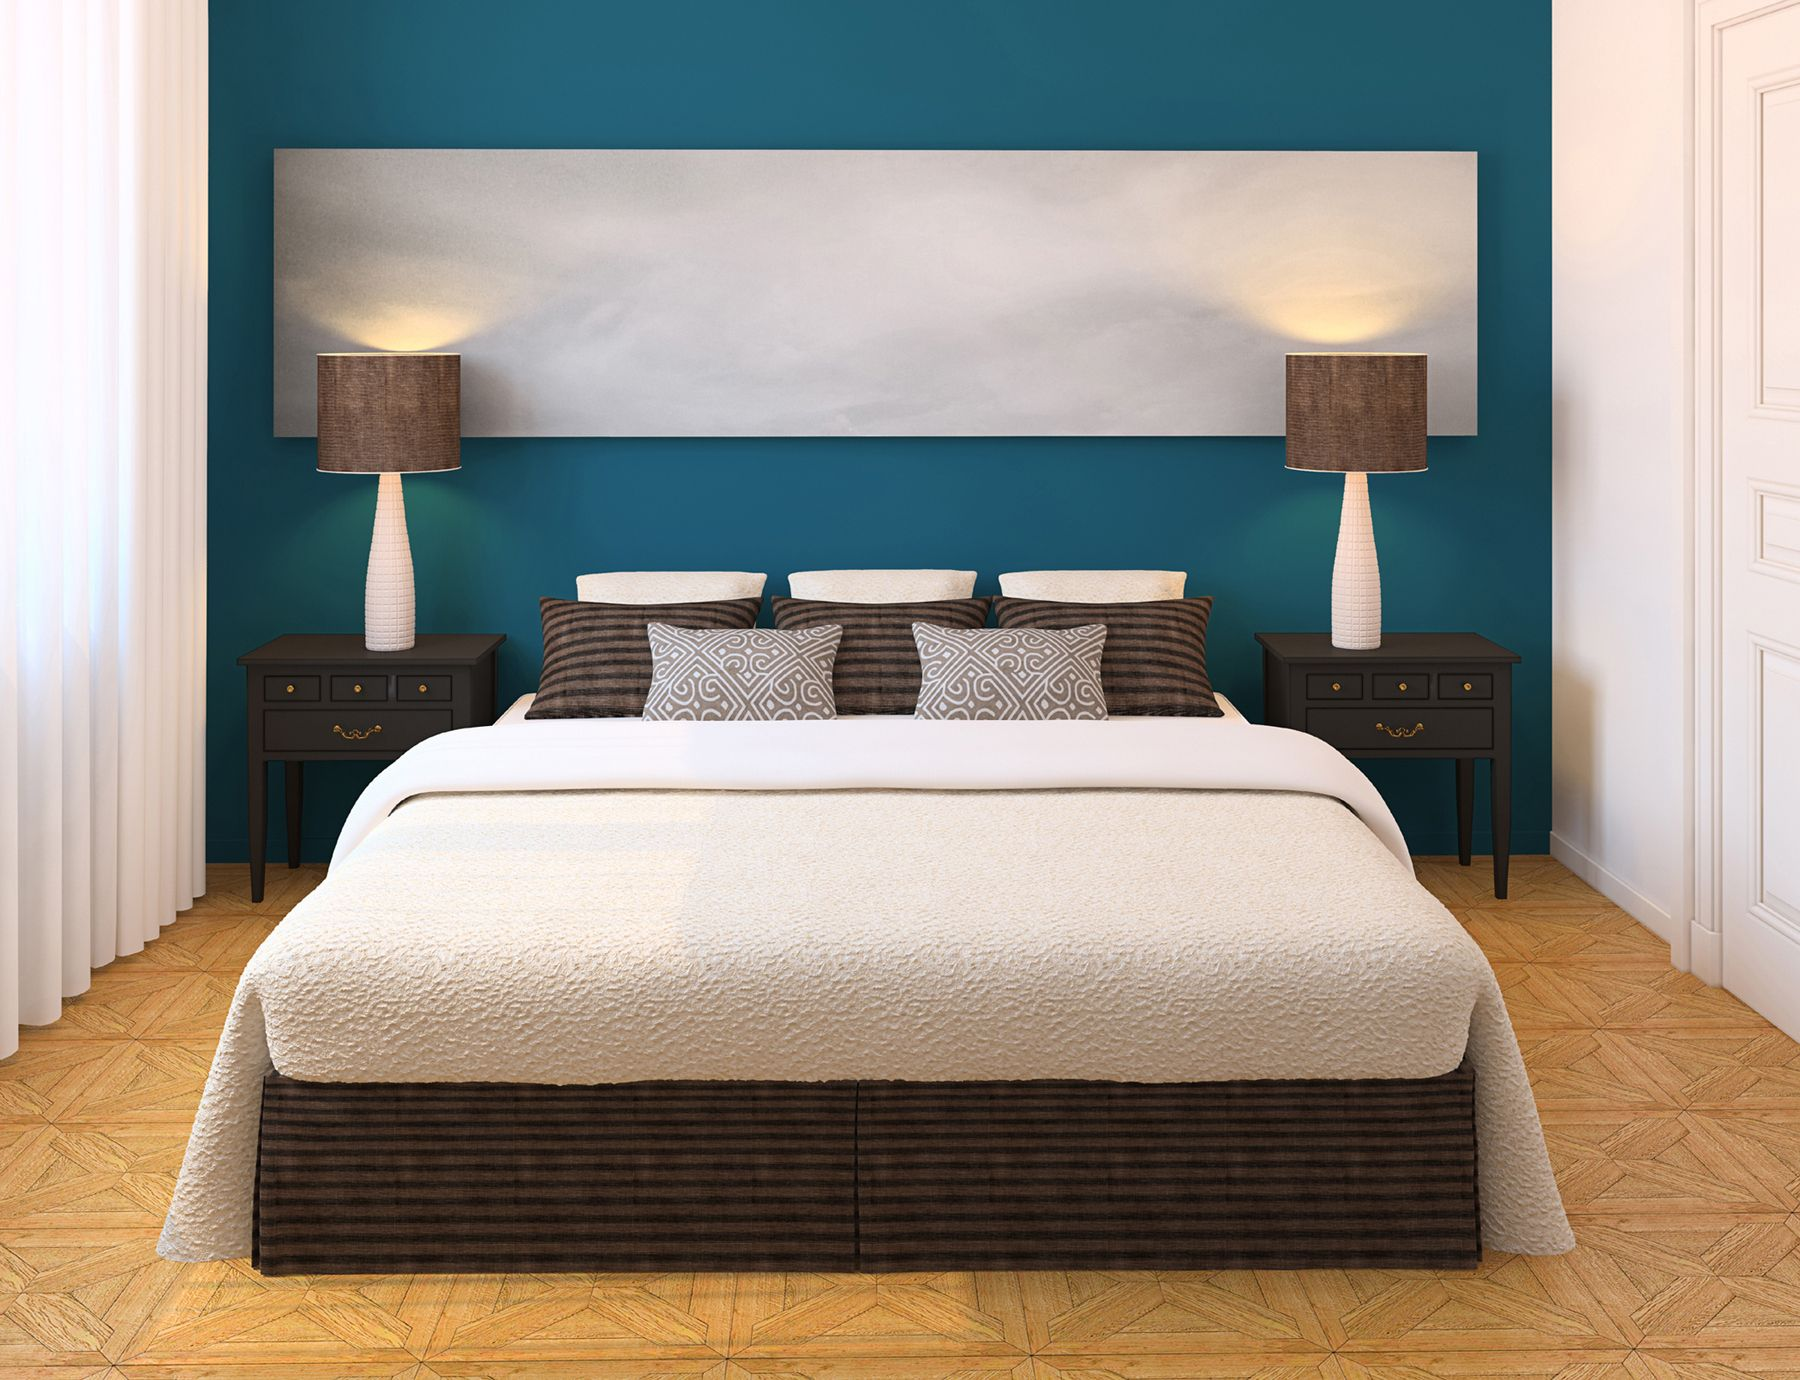 Wide Bed and Wooden Nightstands Completing Simple Room with Enchanting Bedroom Color Ideas